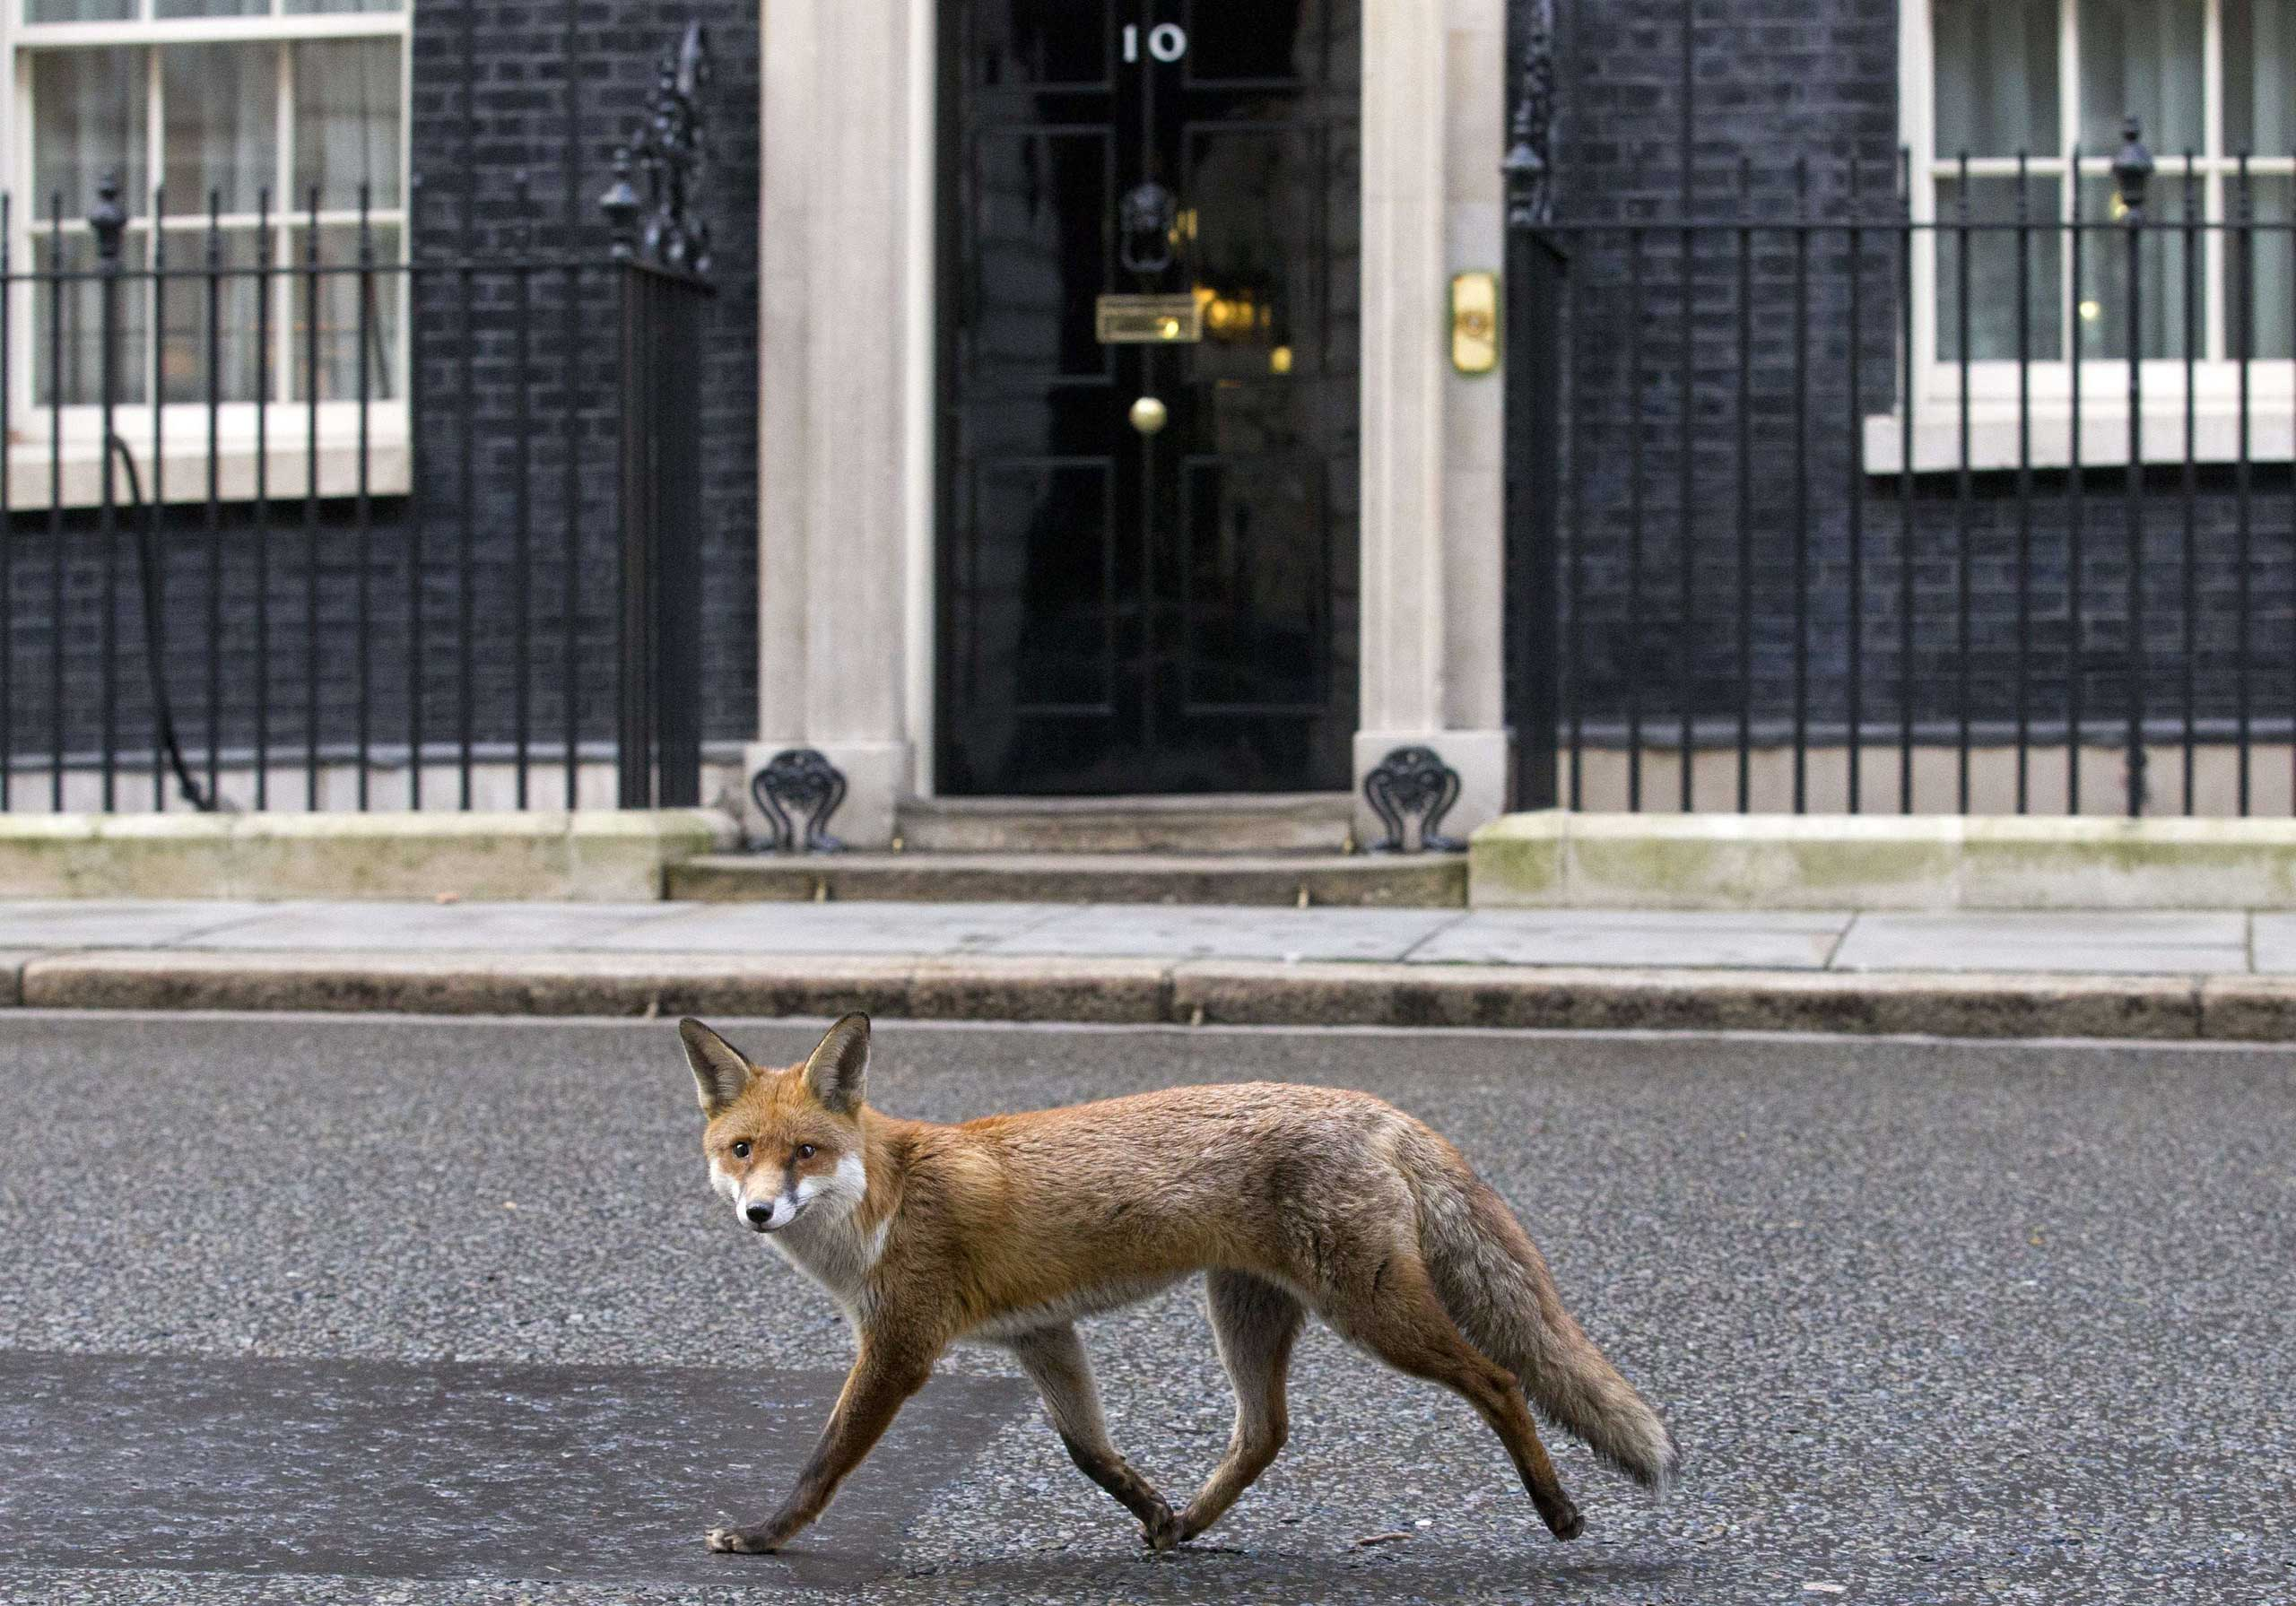 A fox runs past the door of 10 Downing Street in London on Jan.13, 2015.